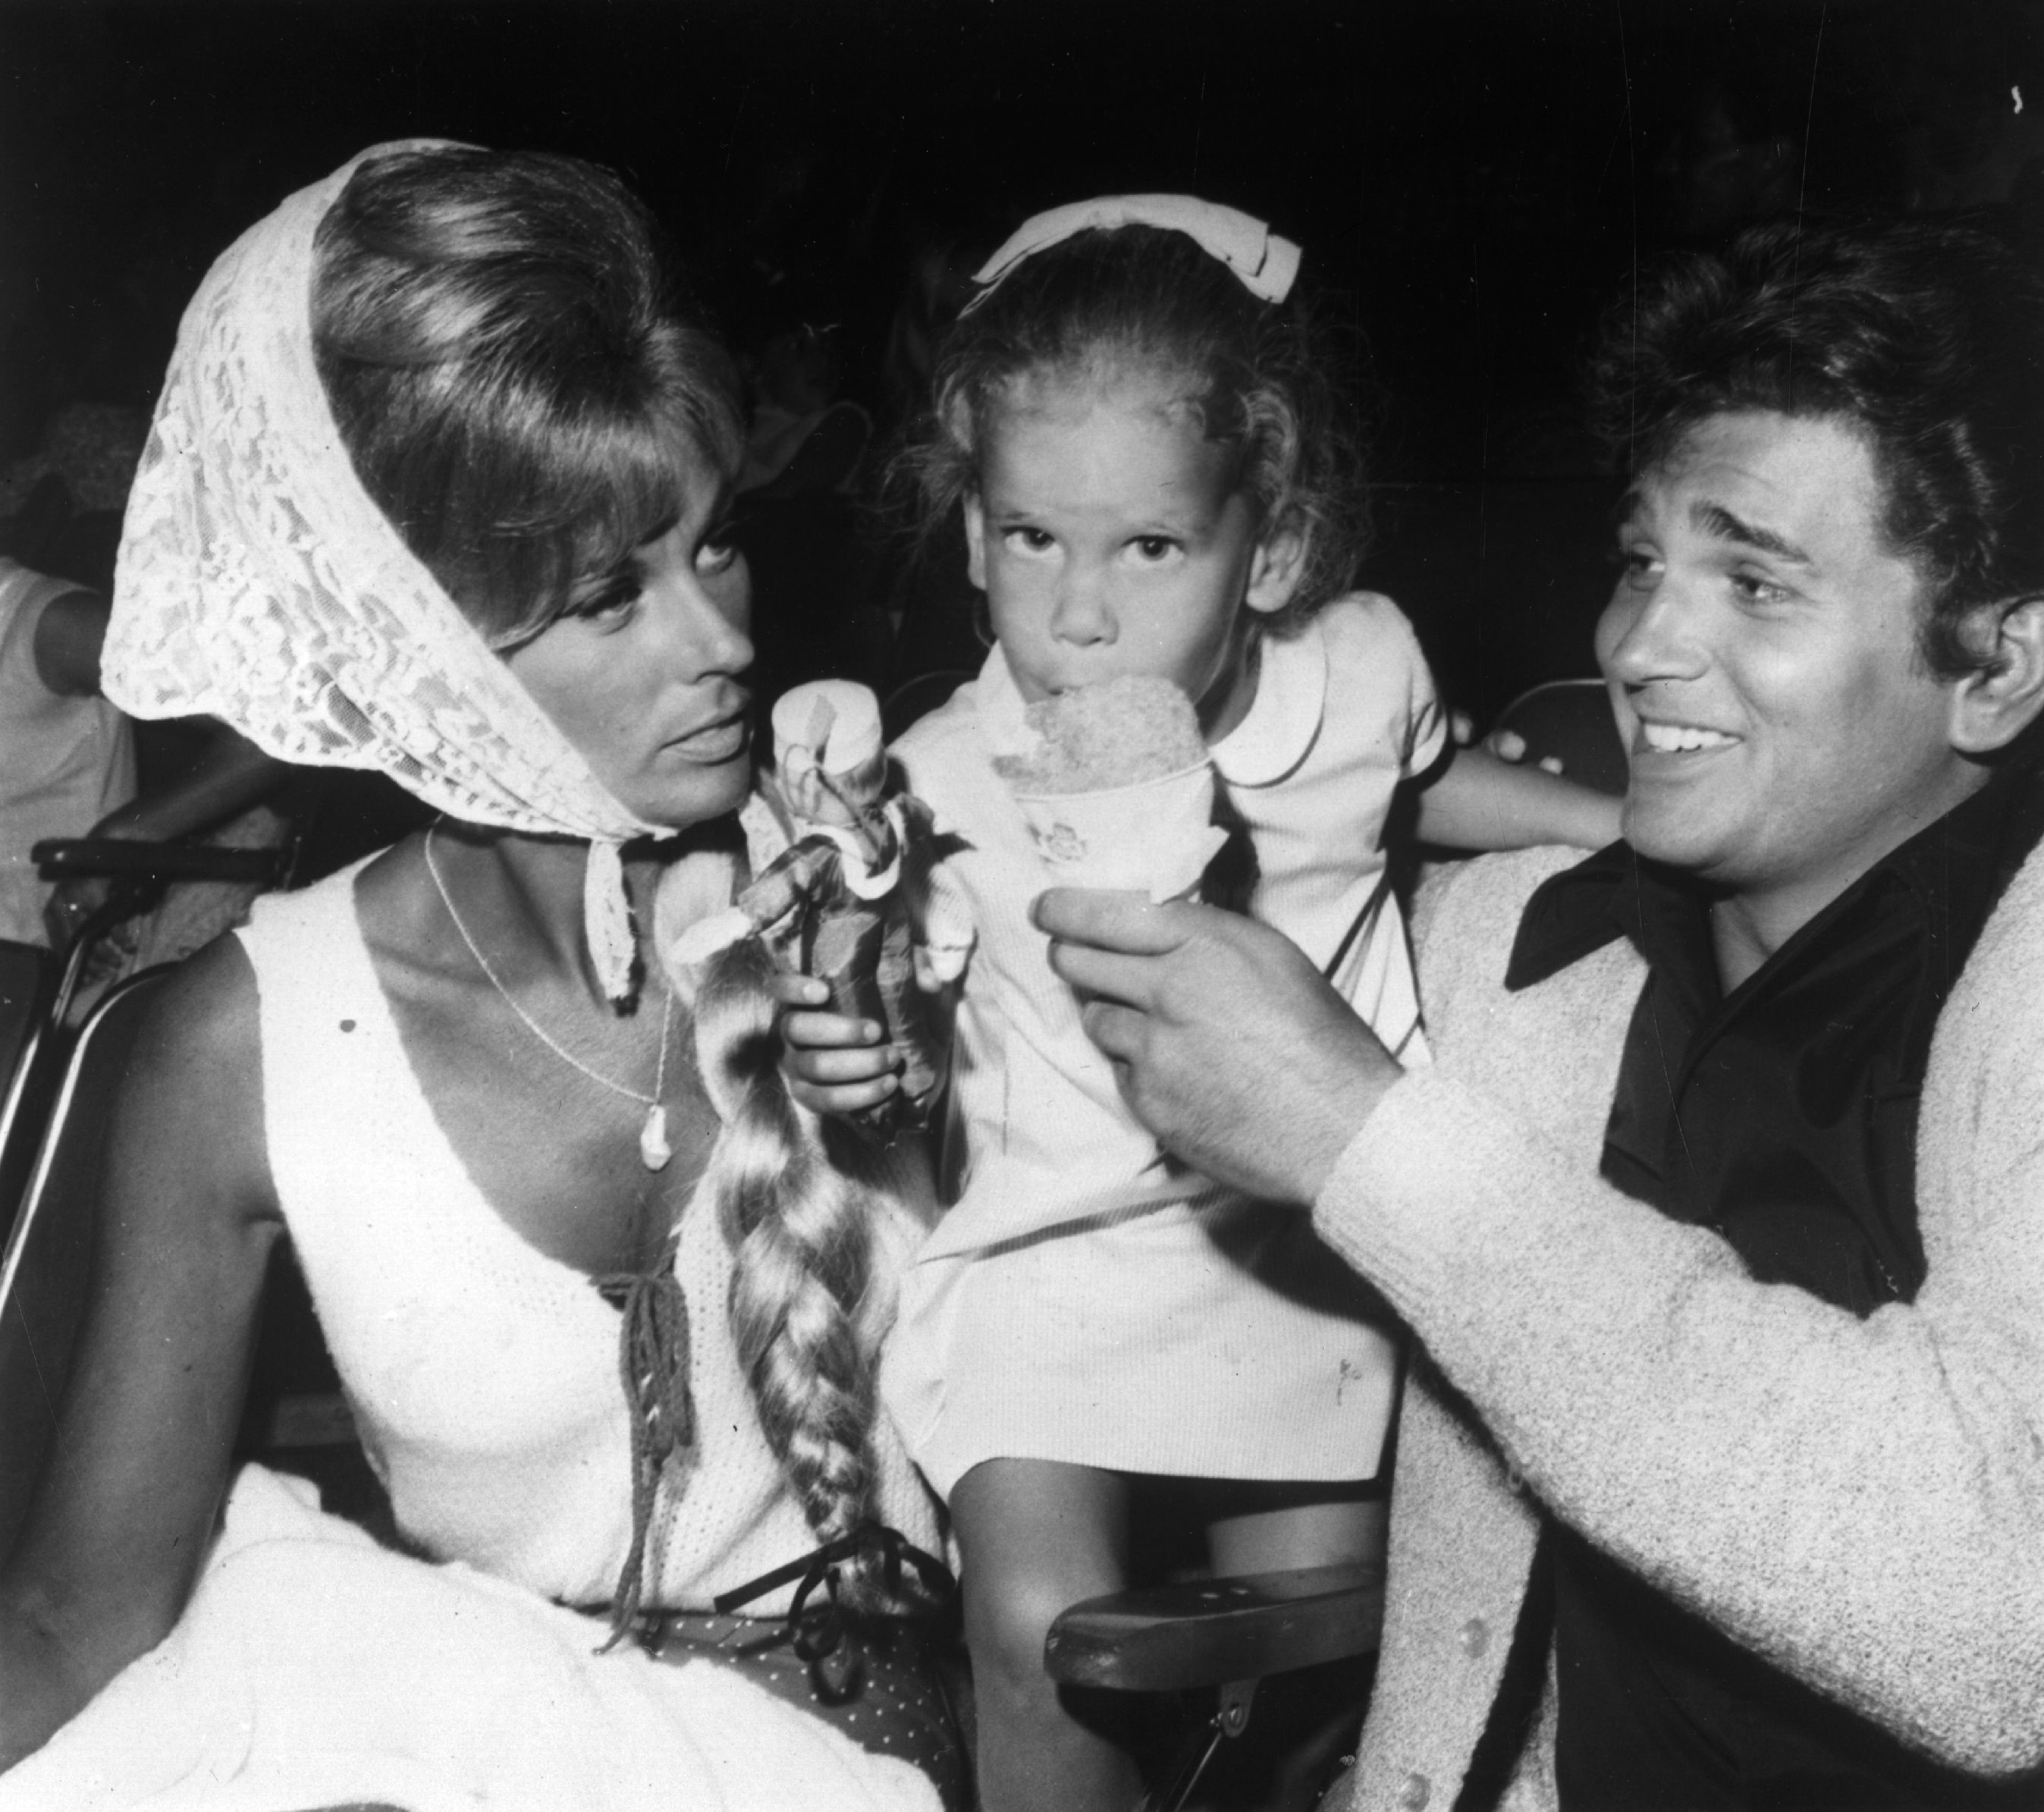 US actor, director and writer Michael Landon, who plays a leading role in the TV series 'Bonanza', with his wife Lynn and their young daughter in August 1965. | Source: Getty Images.